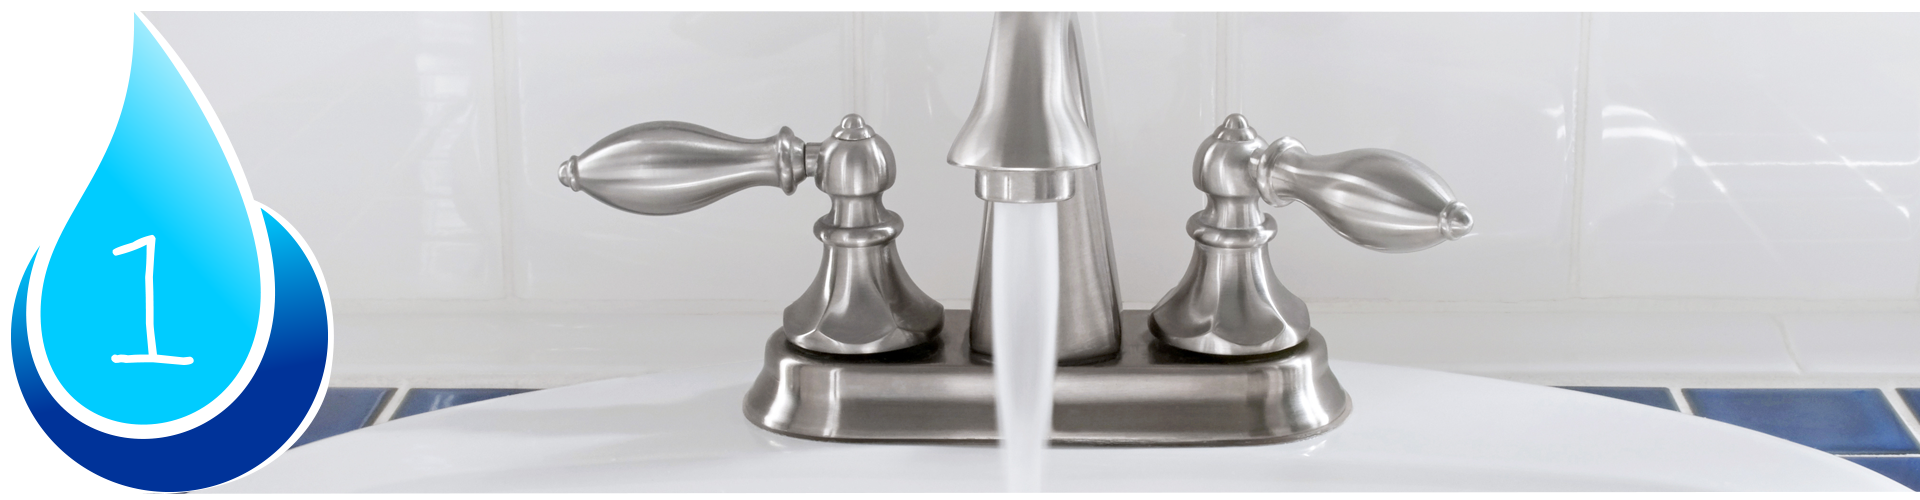 faucet with running water Tips for Saving Water